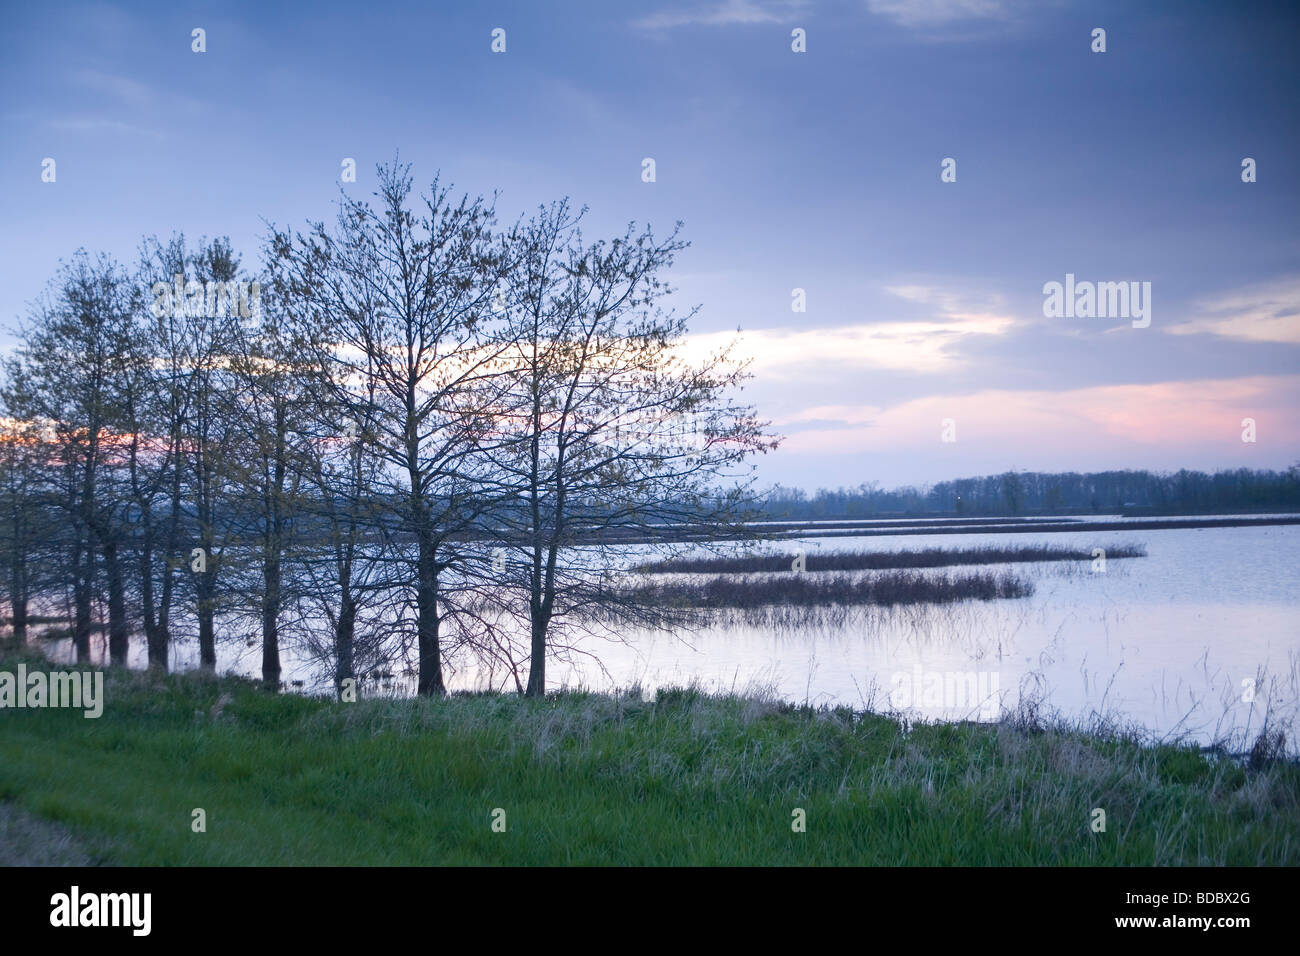 Otter Slough Conservation Area - Stock Image